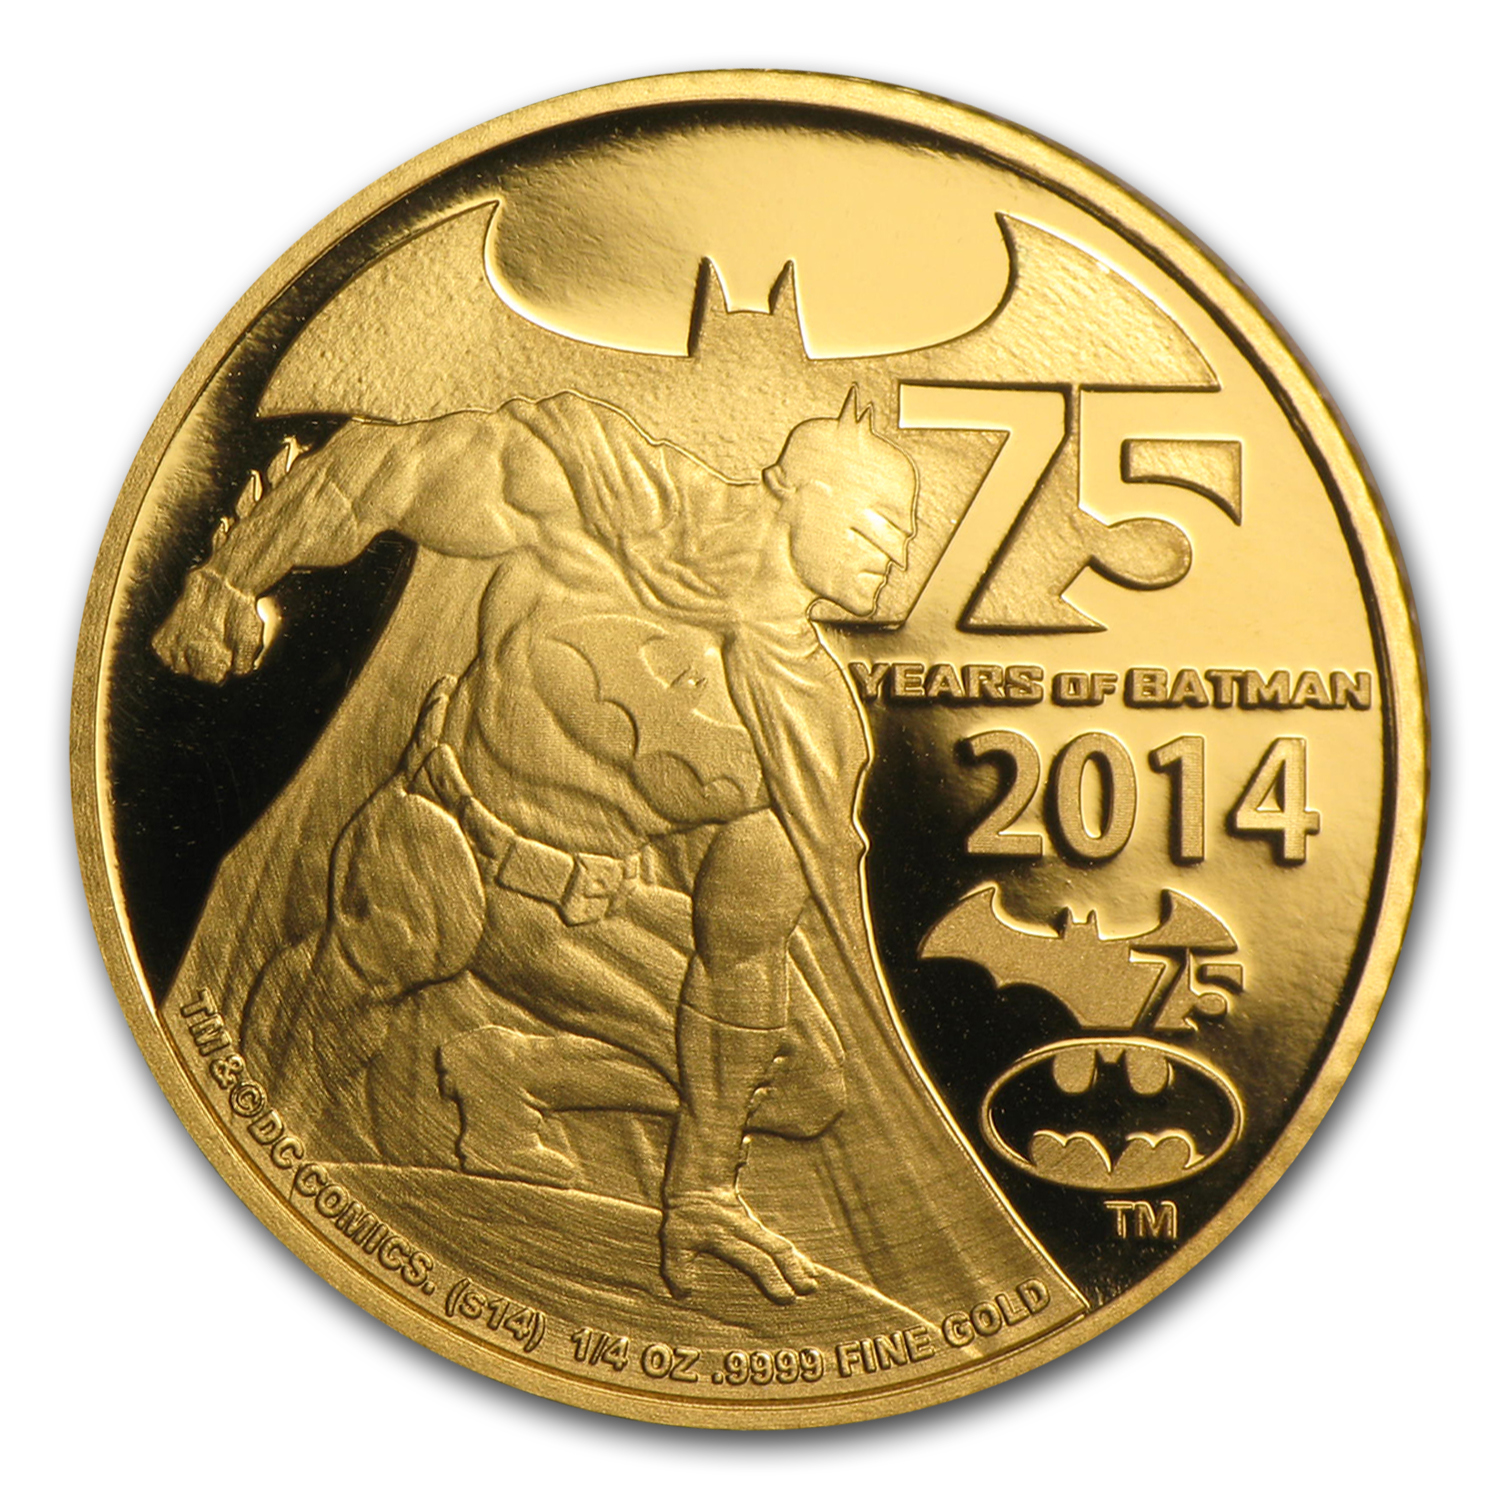 2014 Niue 1/4 oz Proof Gold 75 Years of Batman